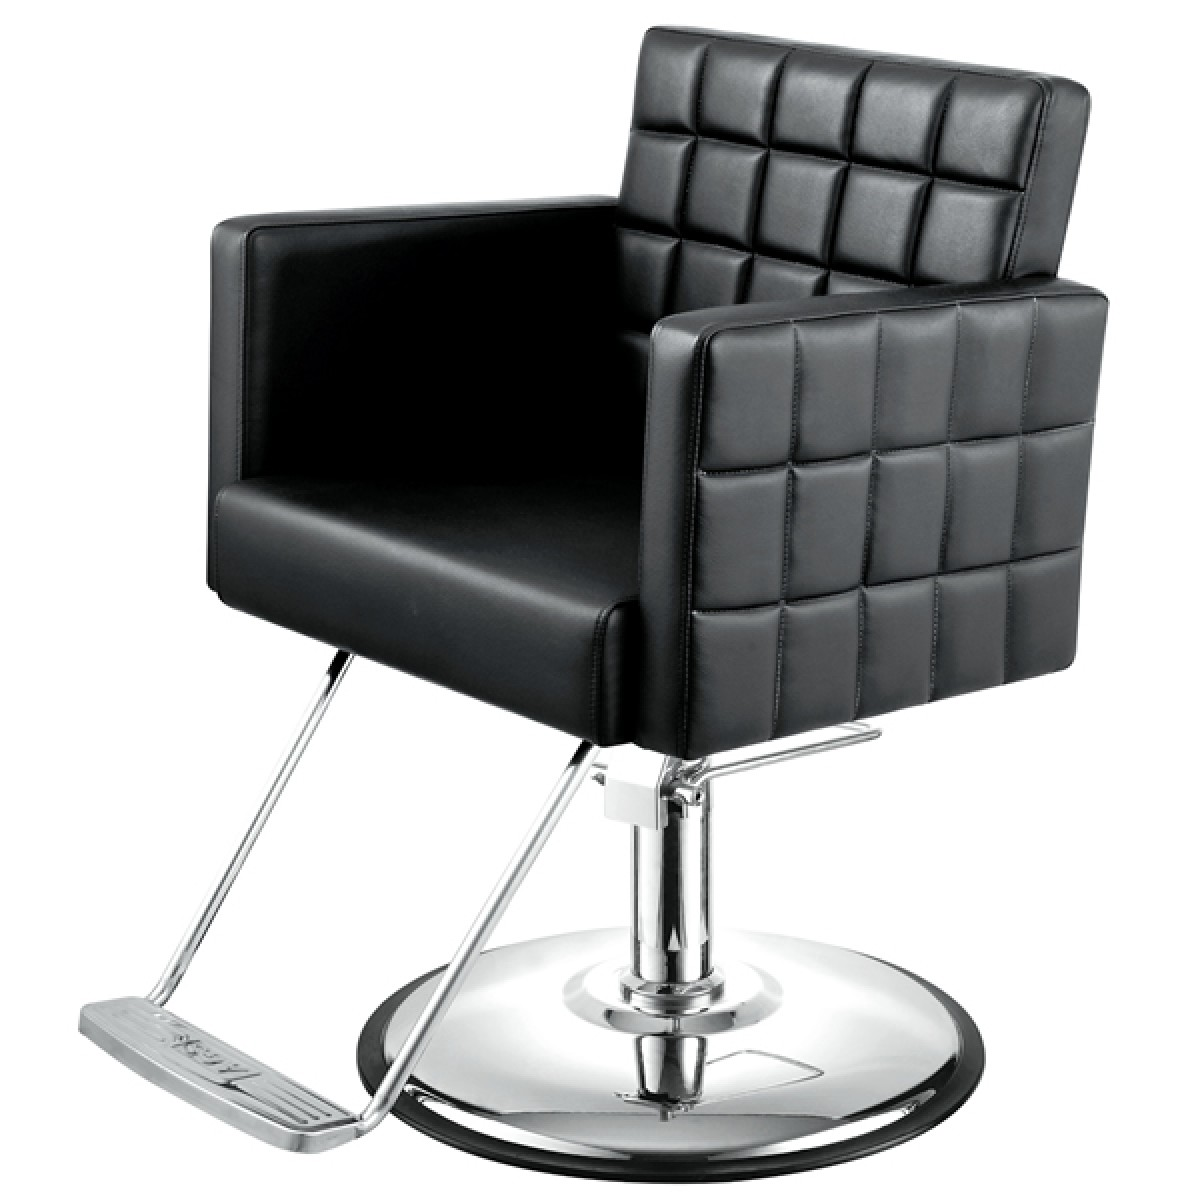 Mosaic salon styling chair free shipping for A m salon equipment